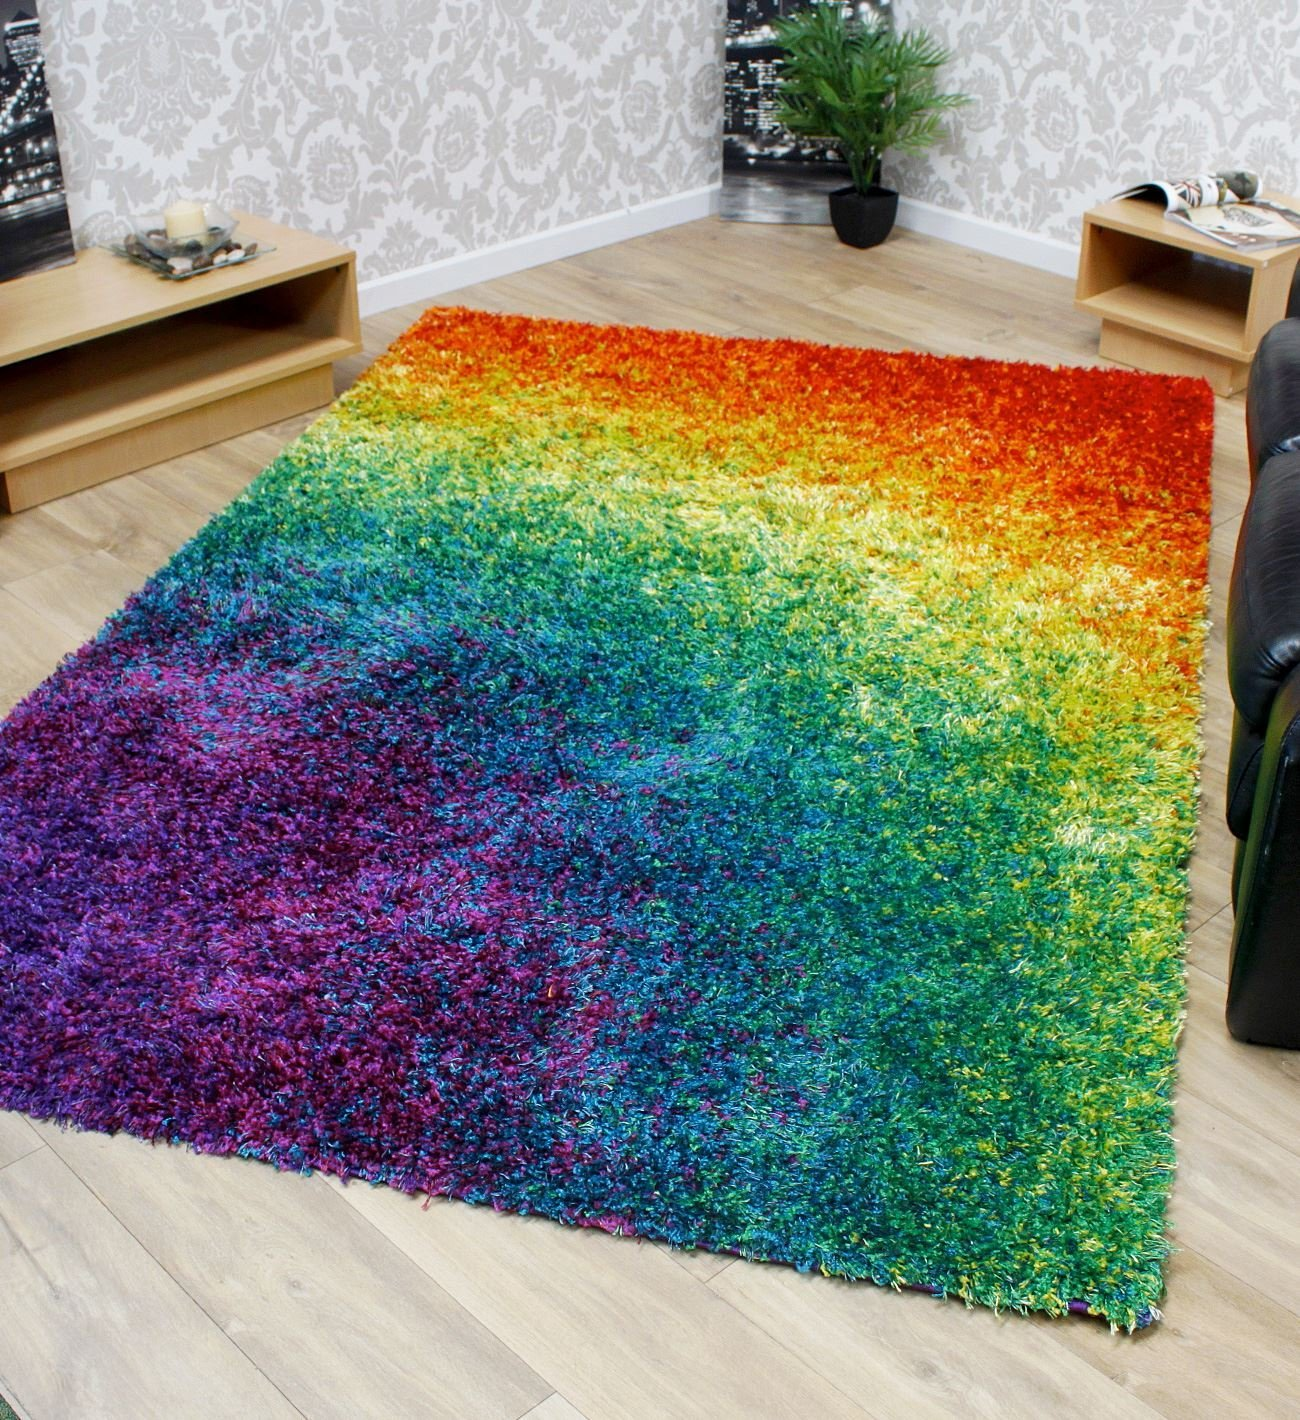 funky rainbow colored area rugs   vibrant rugs you have to see  - funky rainbow colored area rugs   vibrant rugs you have to see  funkthis house